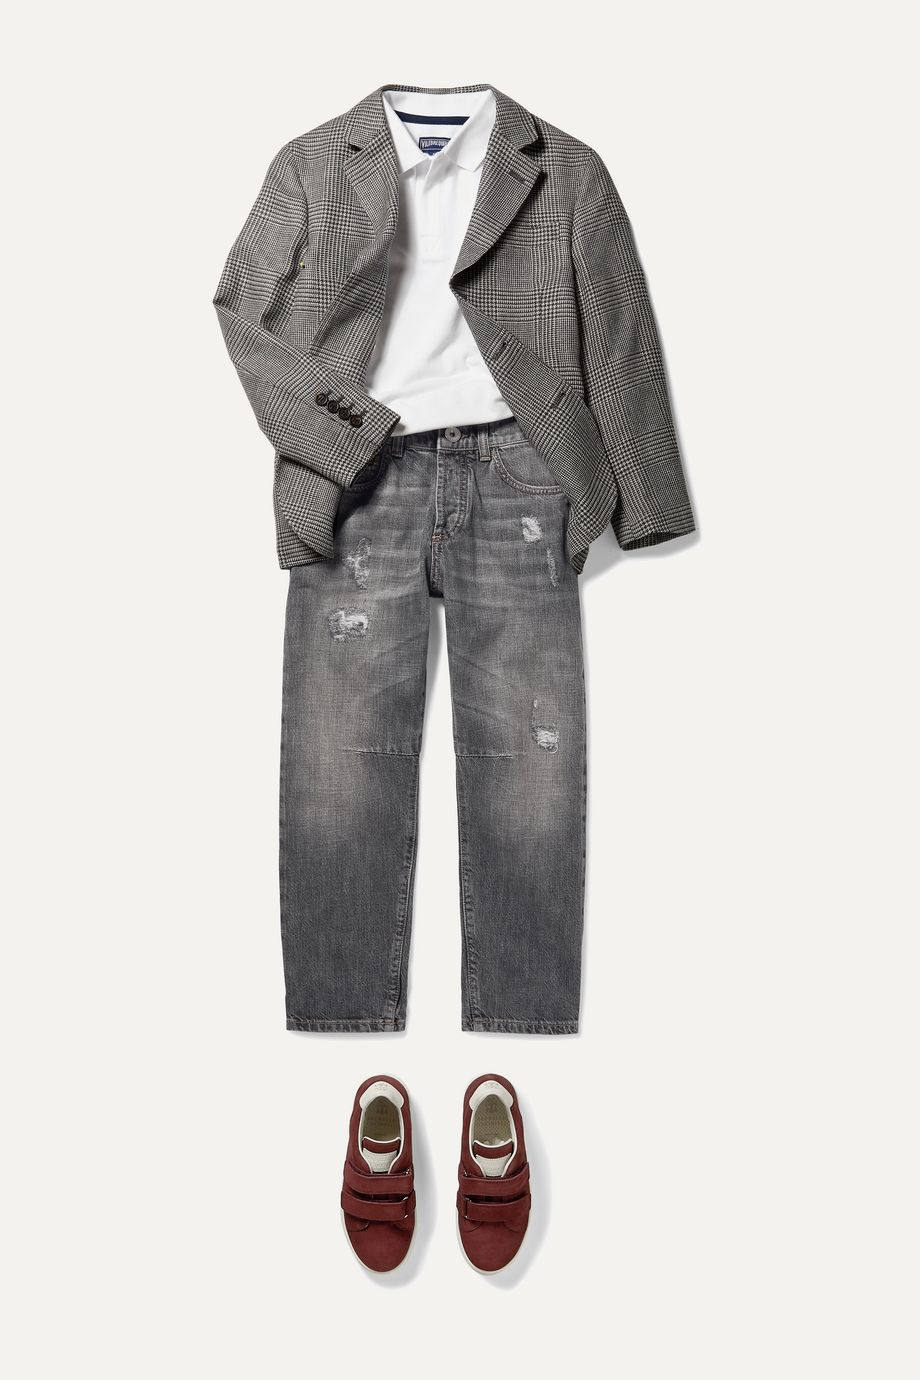 Brunello Cucinelli Kids Ages 8 - 10 distressed denim jeans